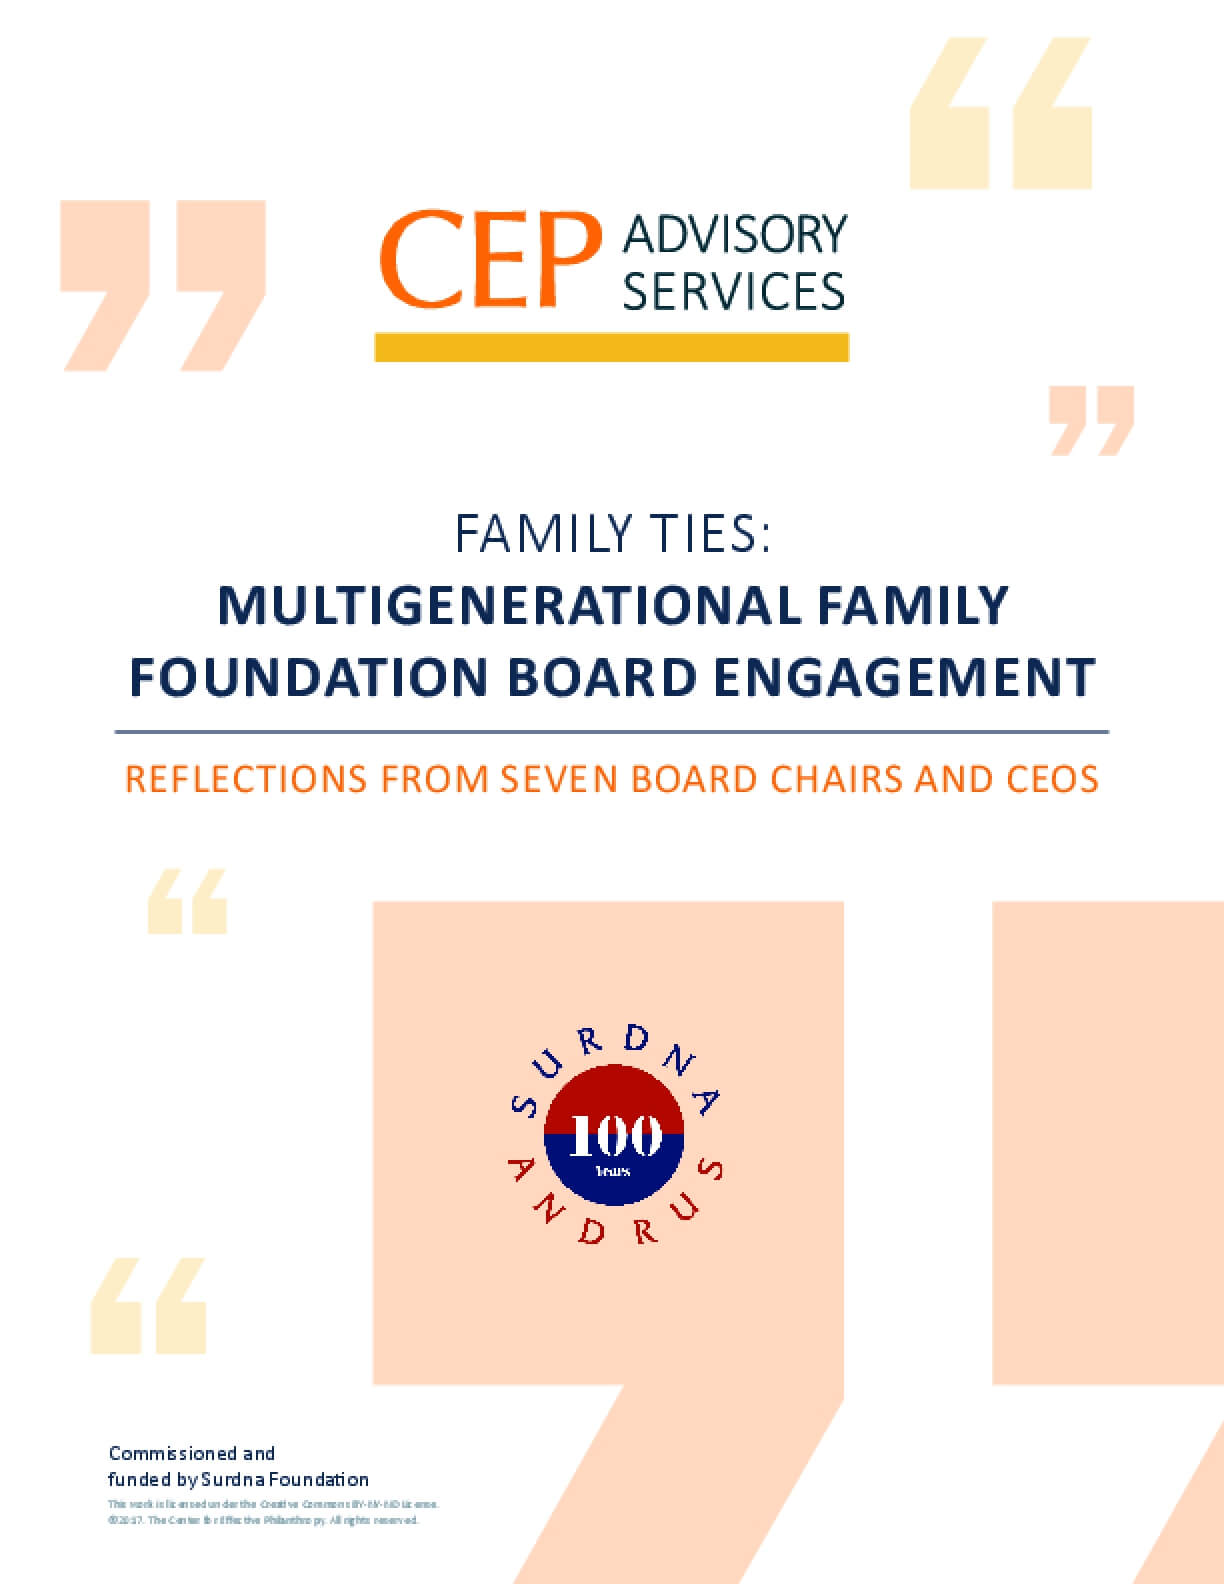 Family Ties: Multigenerational Family Foundation Board Engagement